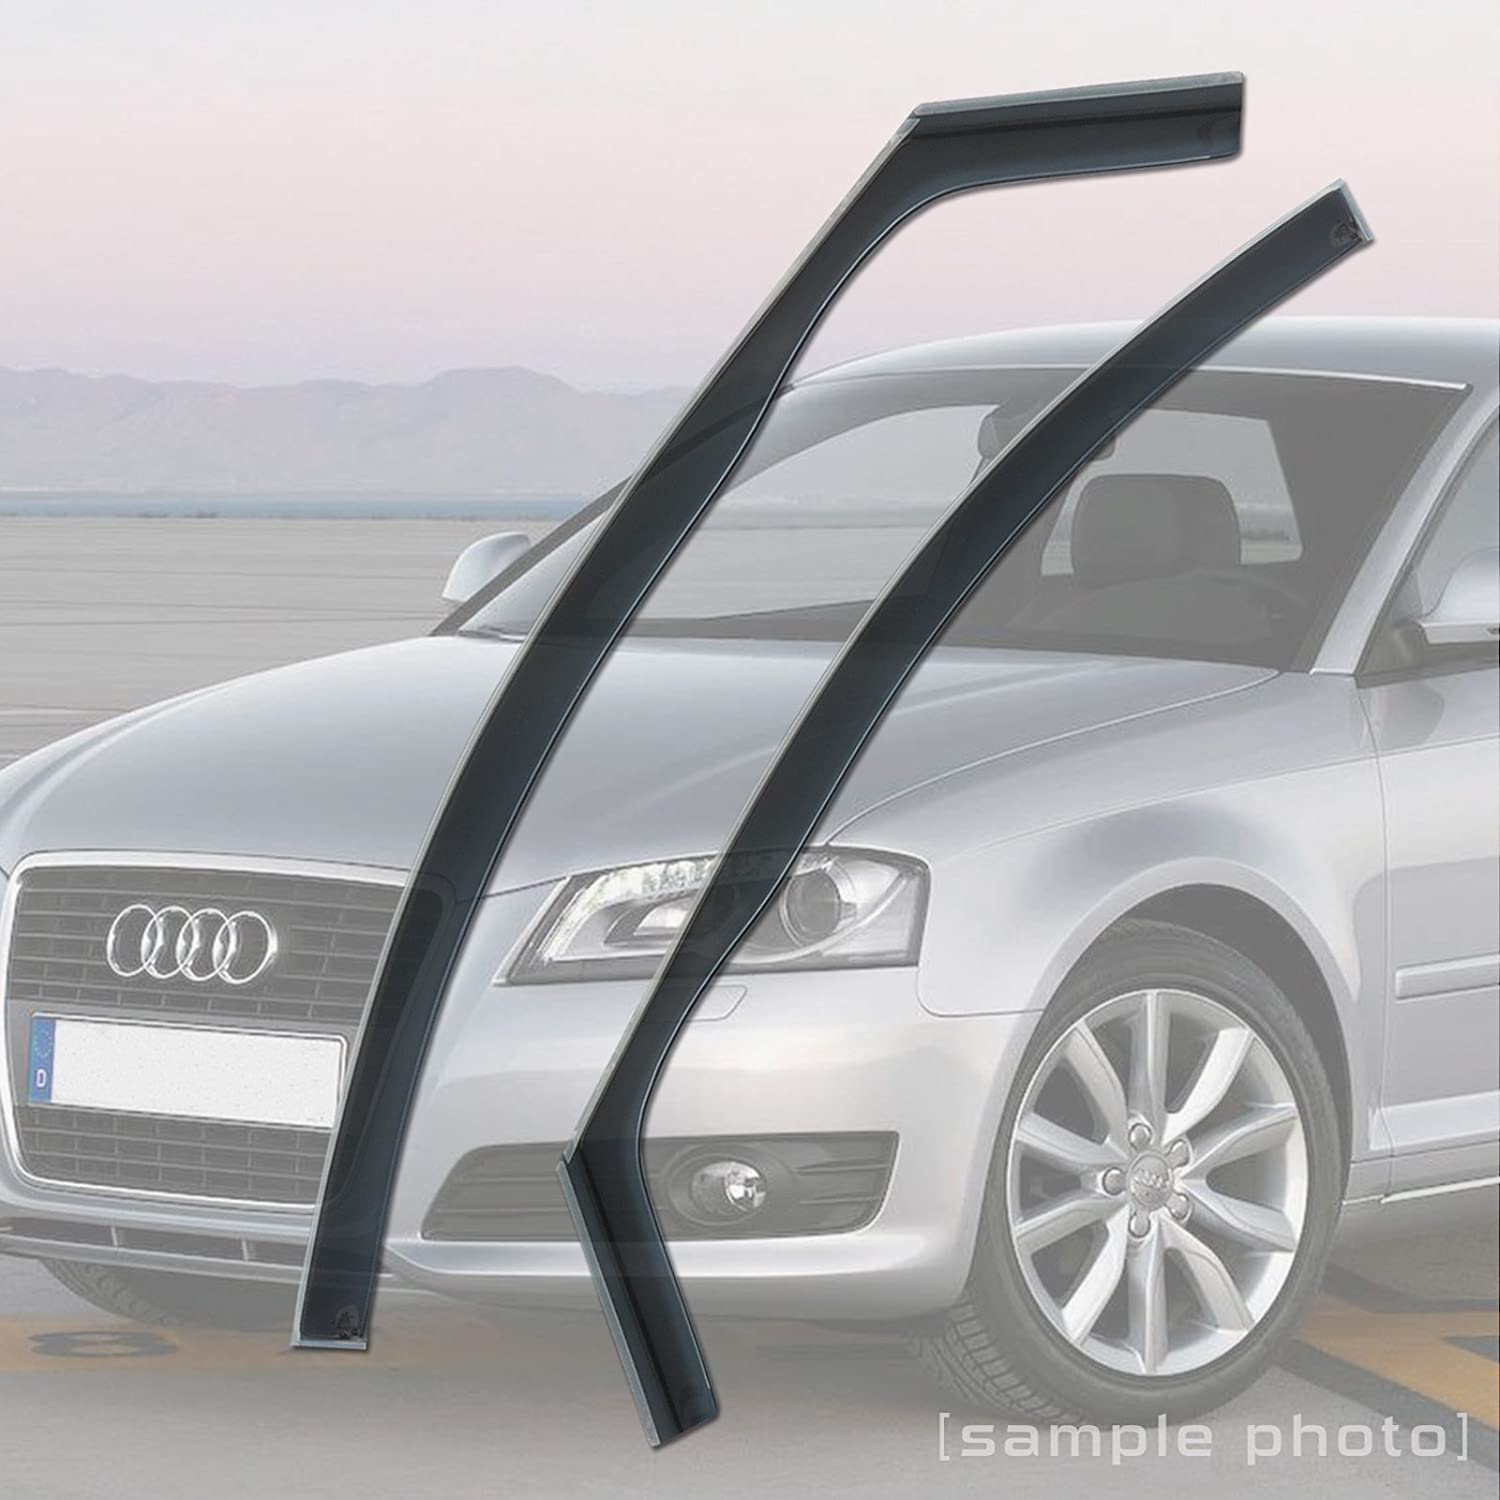 carmats4u Fully Tailored Wind//Rain Deflectors//Includes Clips Adhesive and Instructions FRONTS ONLY